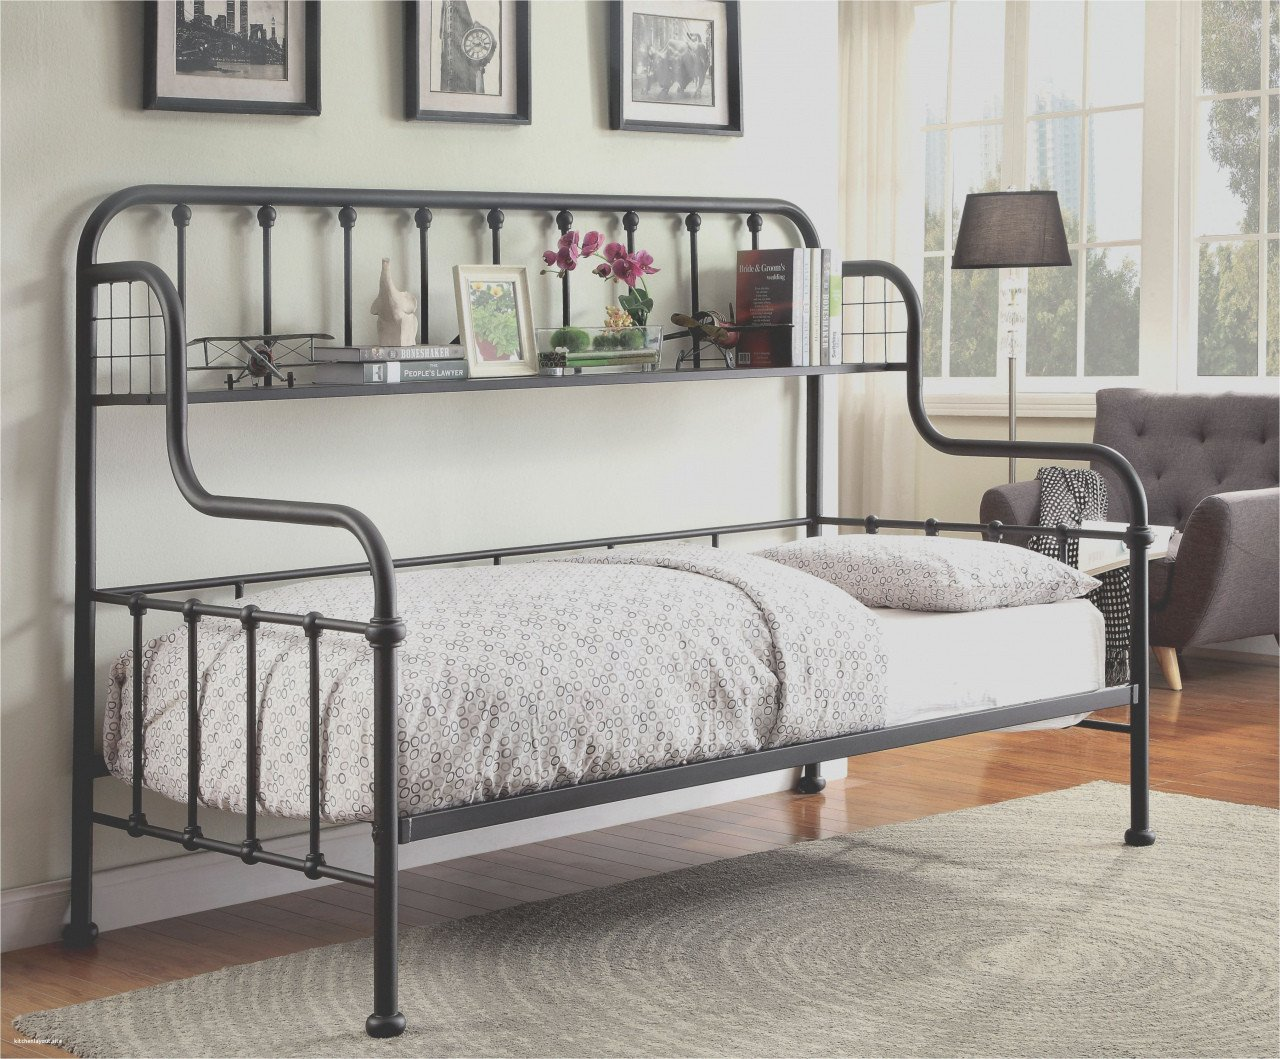 Wrought Iron Bedroom Set Beautiful Black Iron Bed — Procura Home Blog